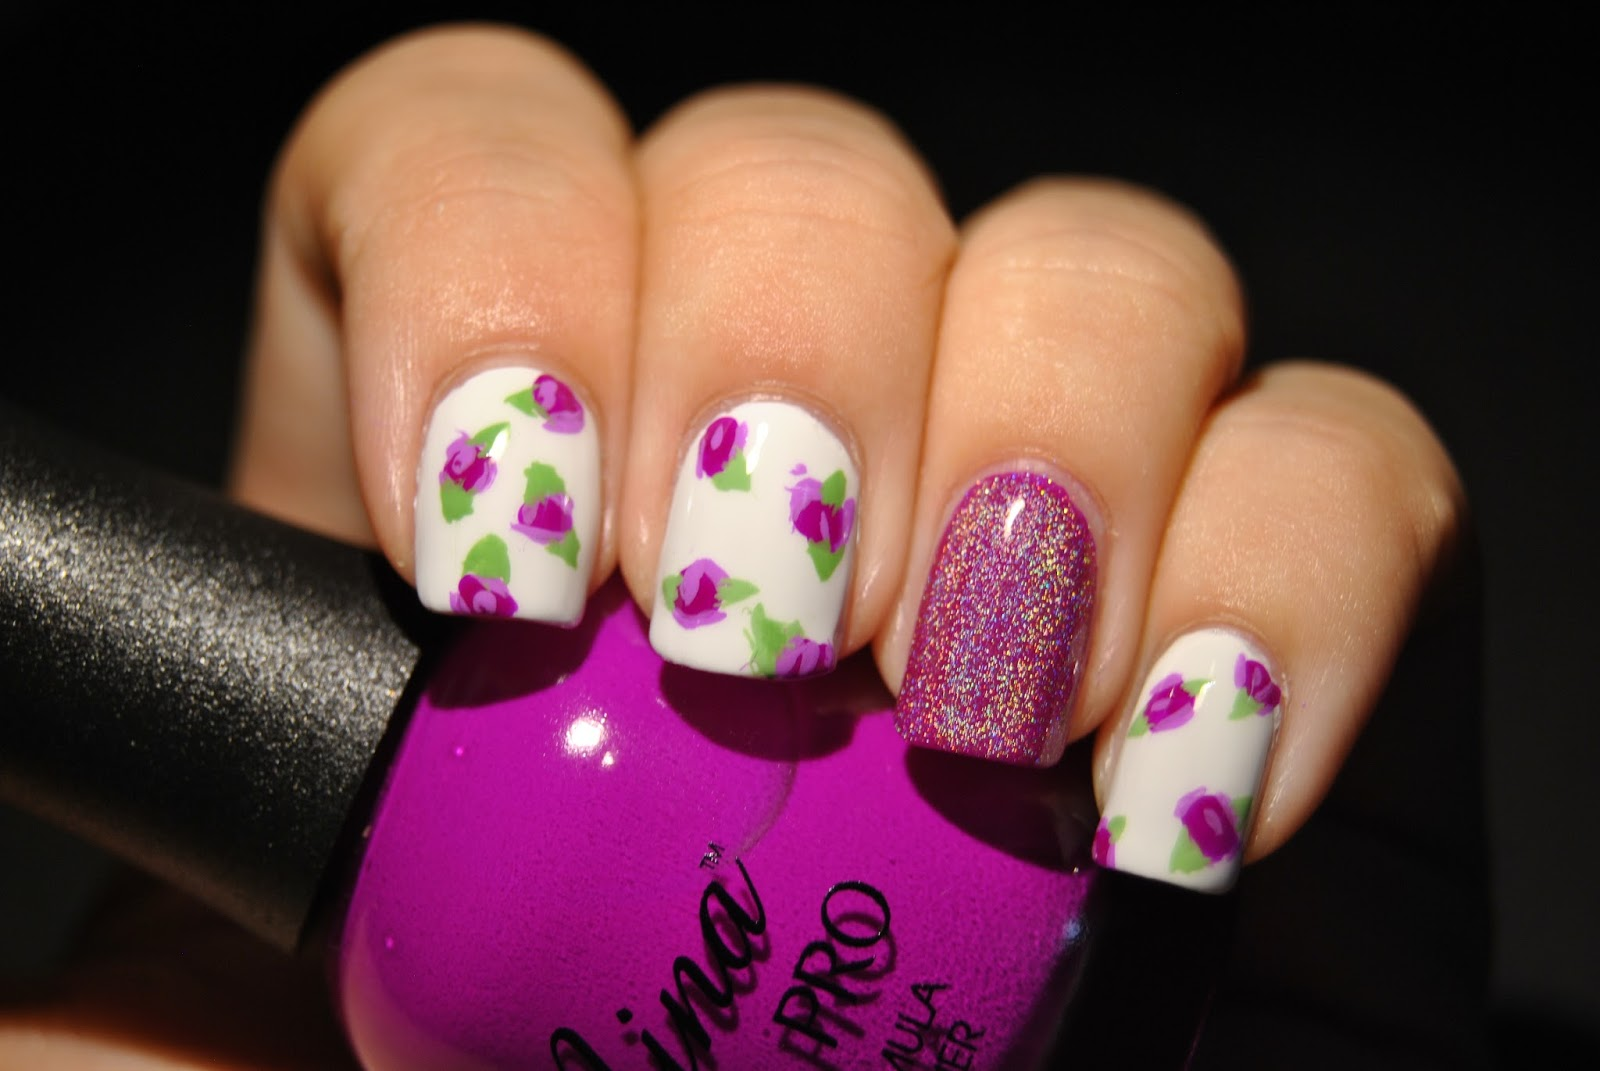 Candy Shoppe Nails: Try It Tuesday: Rose Bud Nails